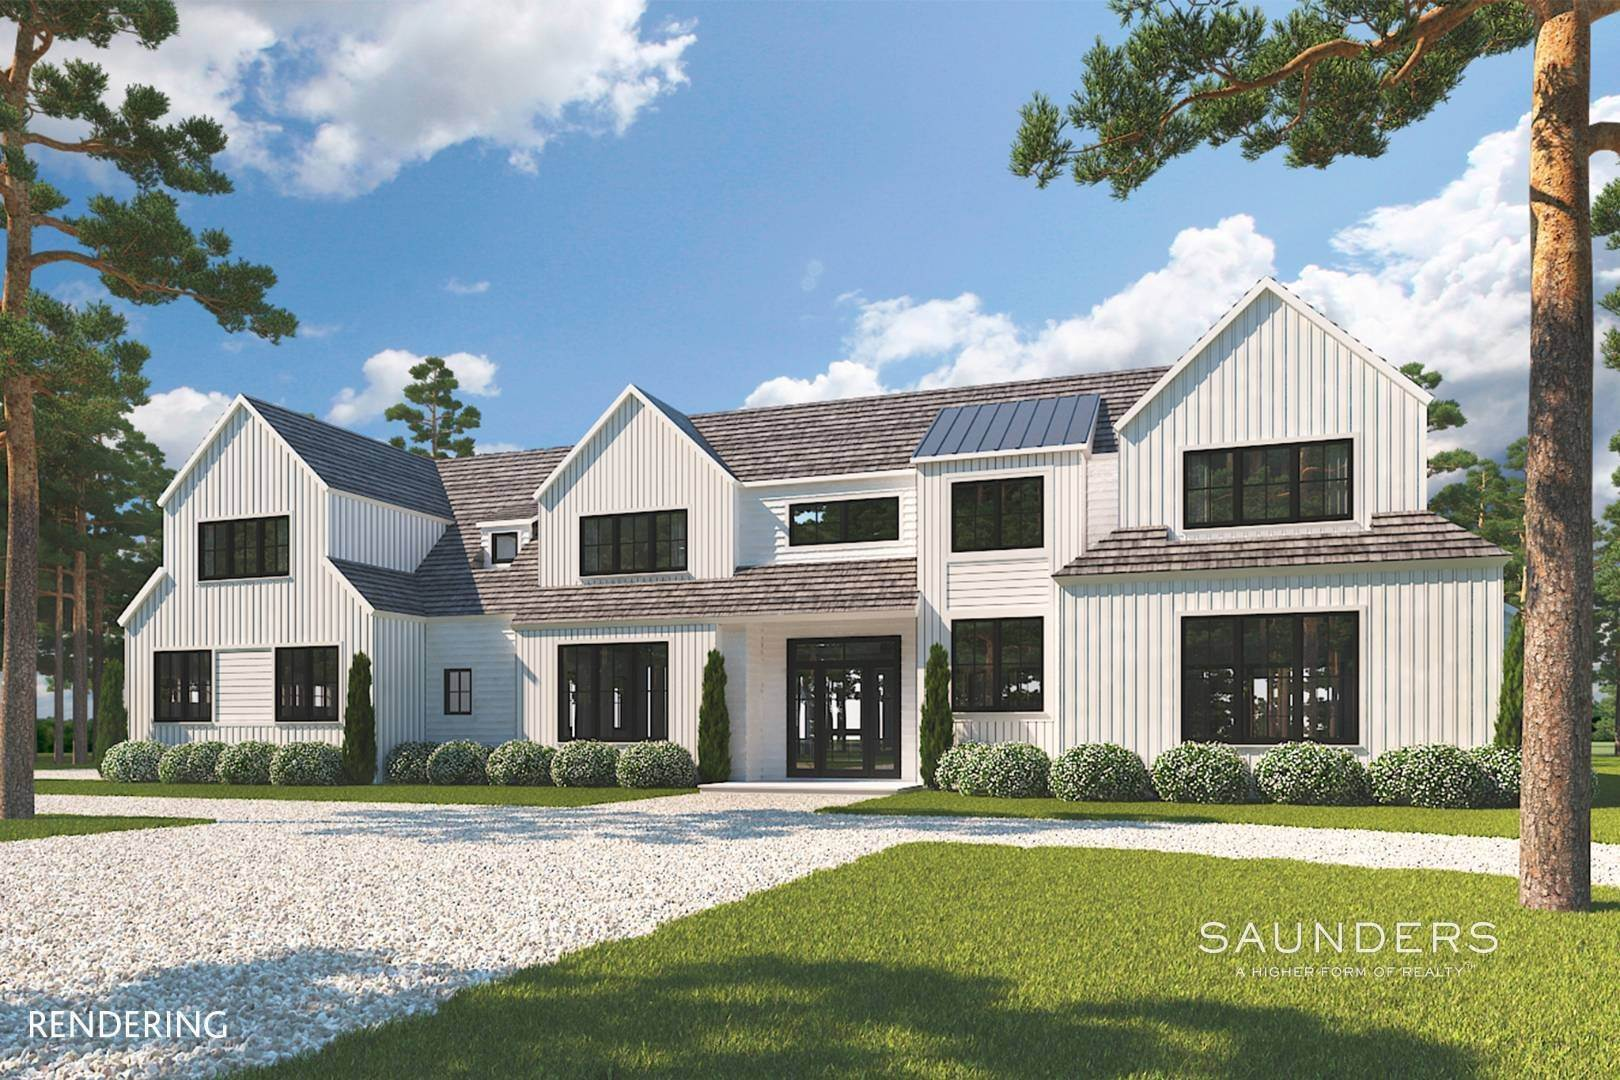 Single Family Homes for Sale at Sagaponack Opportunity - Build Your Dream Home 363 Wainscott Harbor Road, Sagaponack, Southampton Town, NY 11968